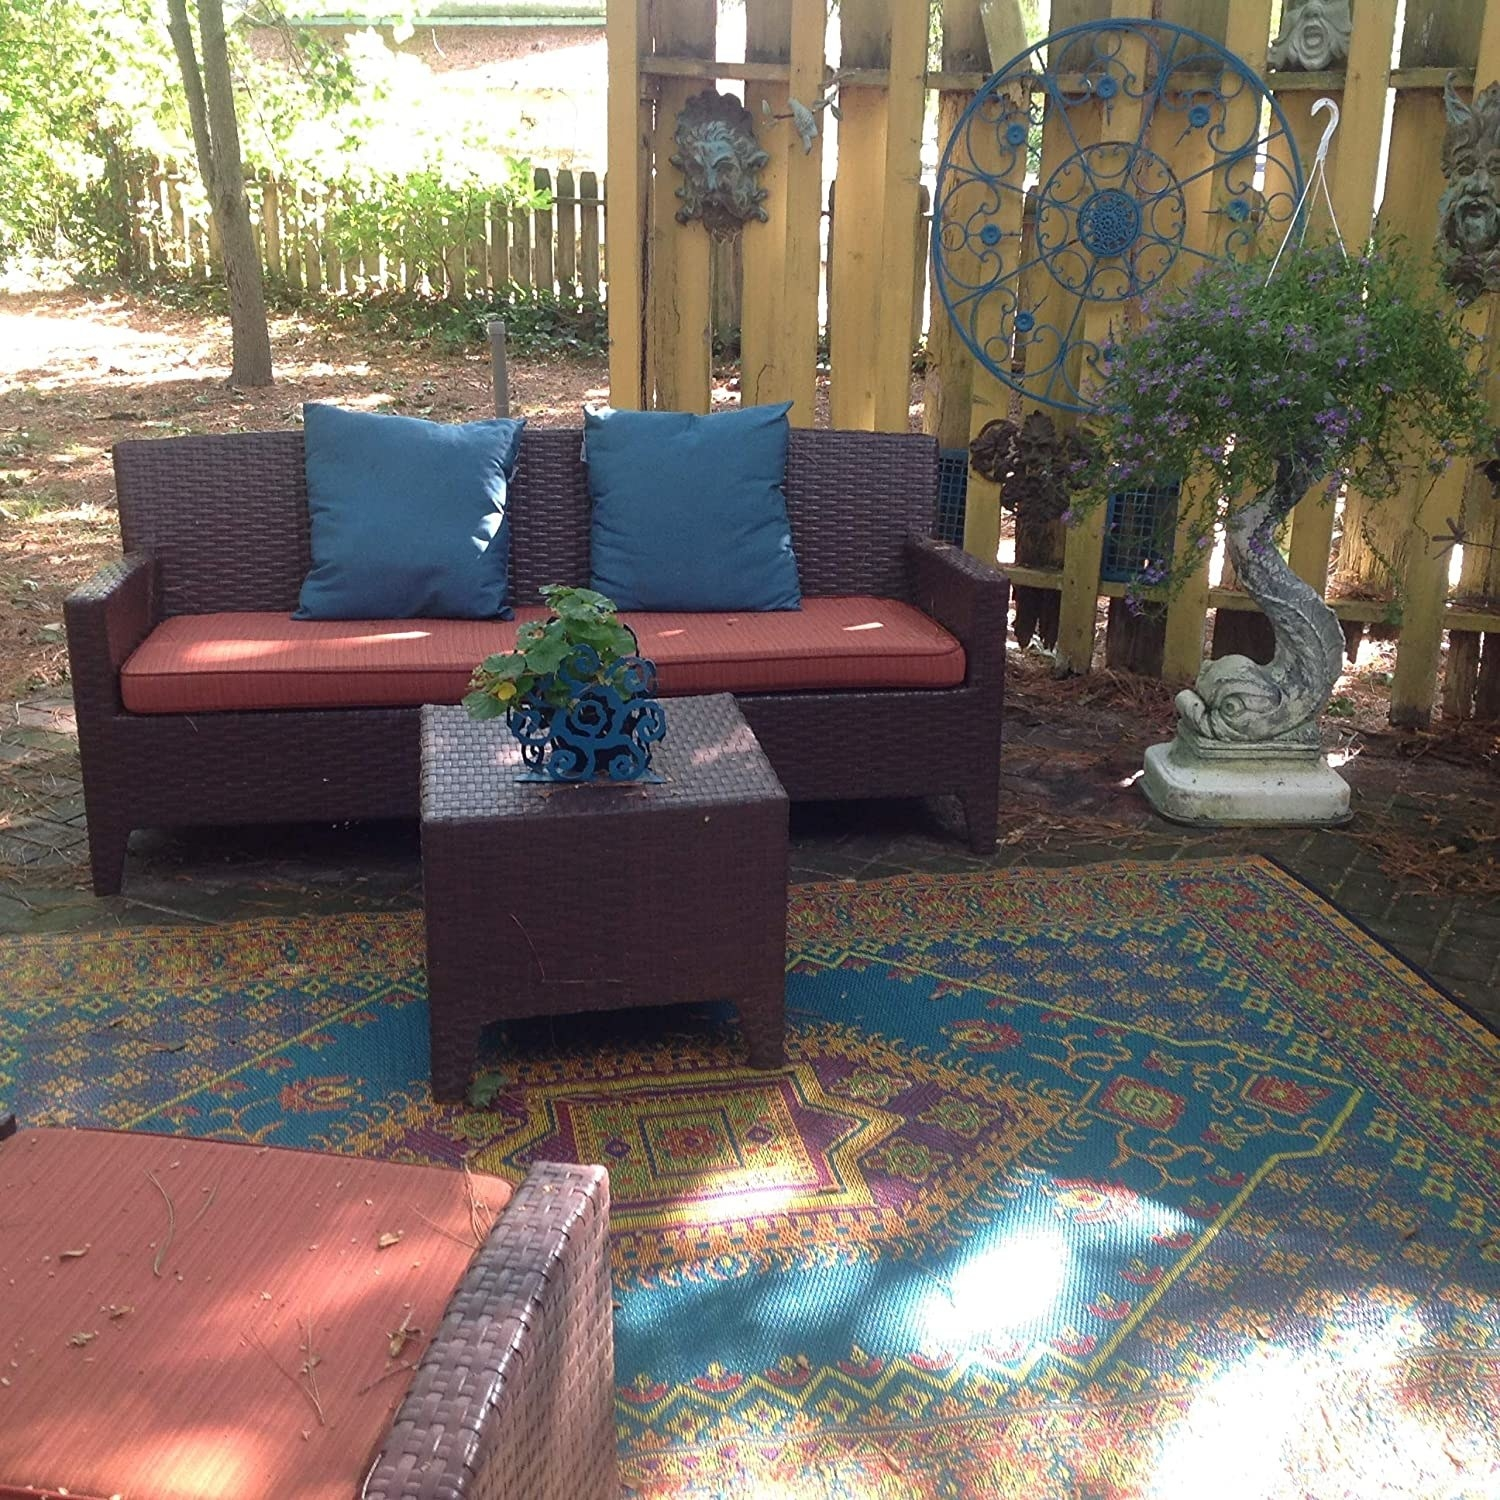 outdoor room with patio furniture with printed rug on the patio surface